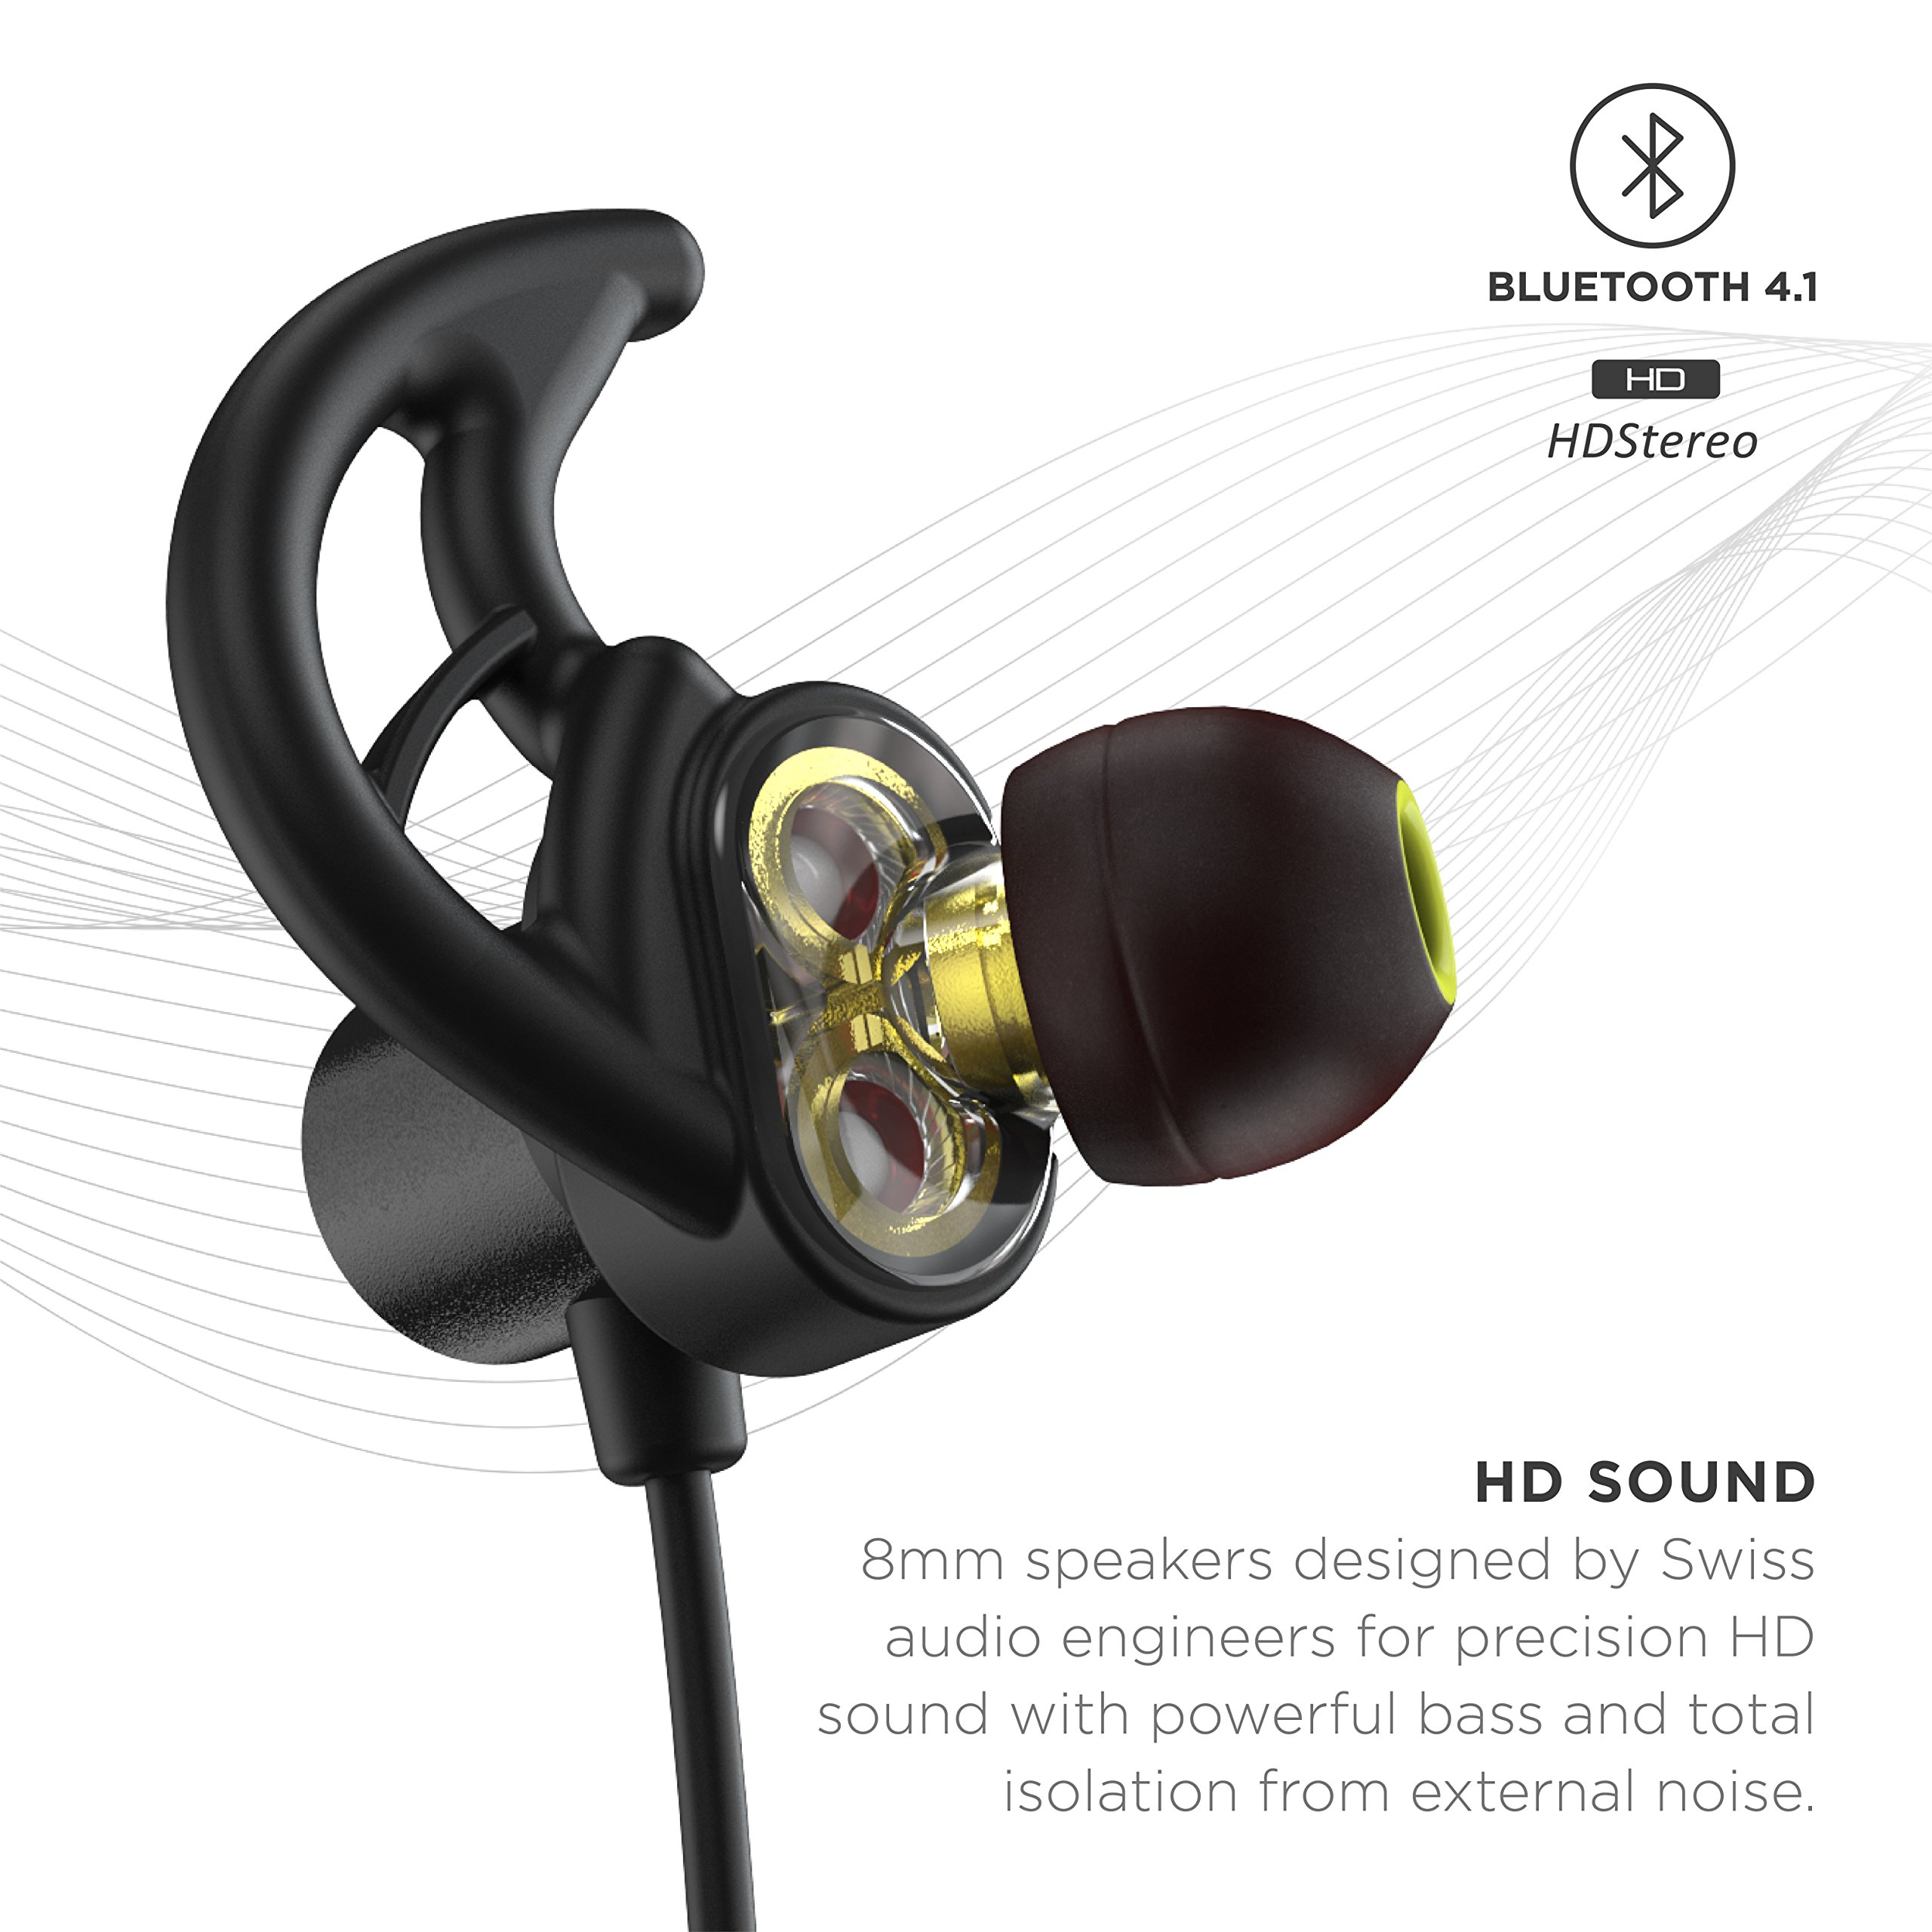 Phaiser BHS-790 Bluetooth Headphones with Dual Graphene Drivers and AptX Sport Headset Earphones with Mic and Lifetime Sweatproof Guarantee - Wireless Bluetooth Earbuds for Running, Blackout by Phaiser (Image #2)